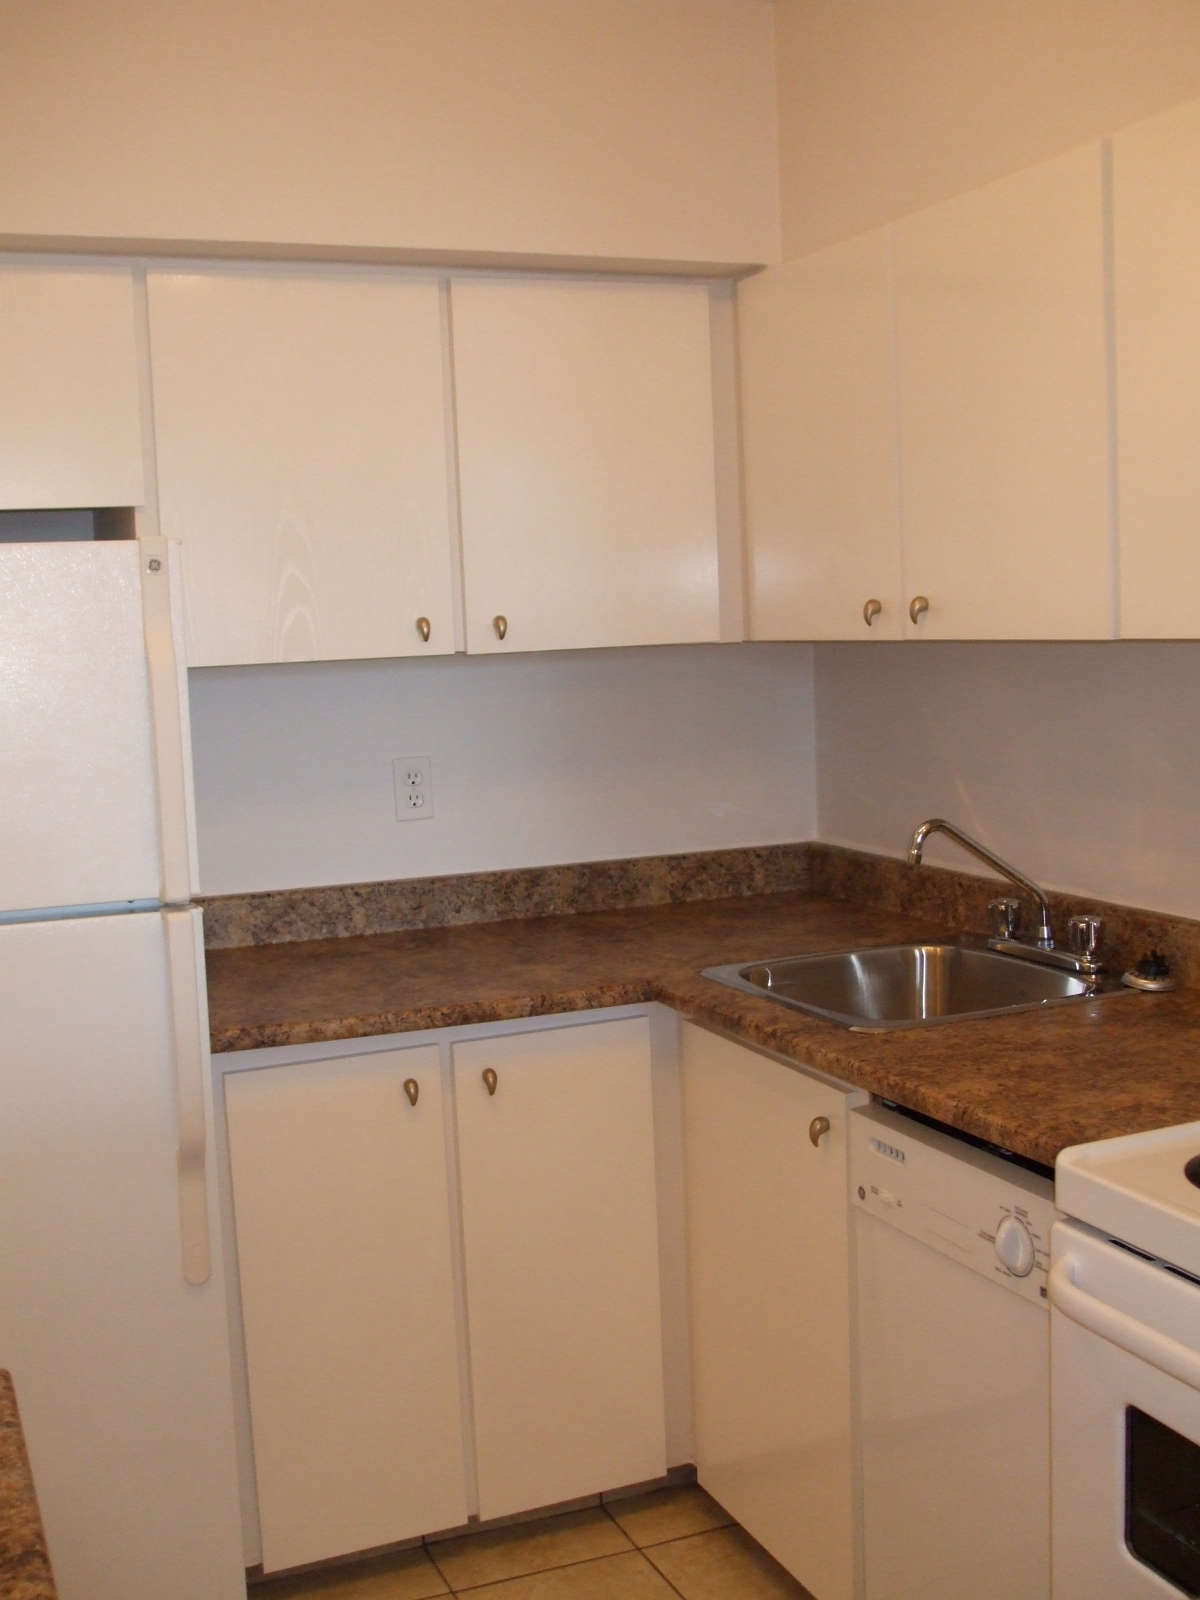 1 bedroom Apartments for rent in Plateau Mont-Royal at Tour Lafontaine - Photo 01 - RentQuebecApartments – L23191